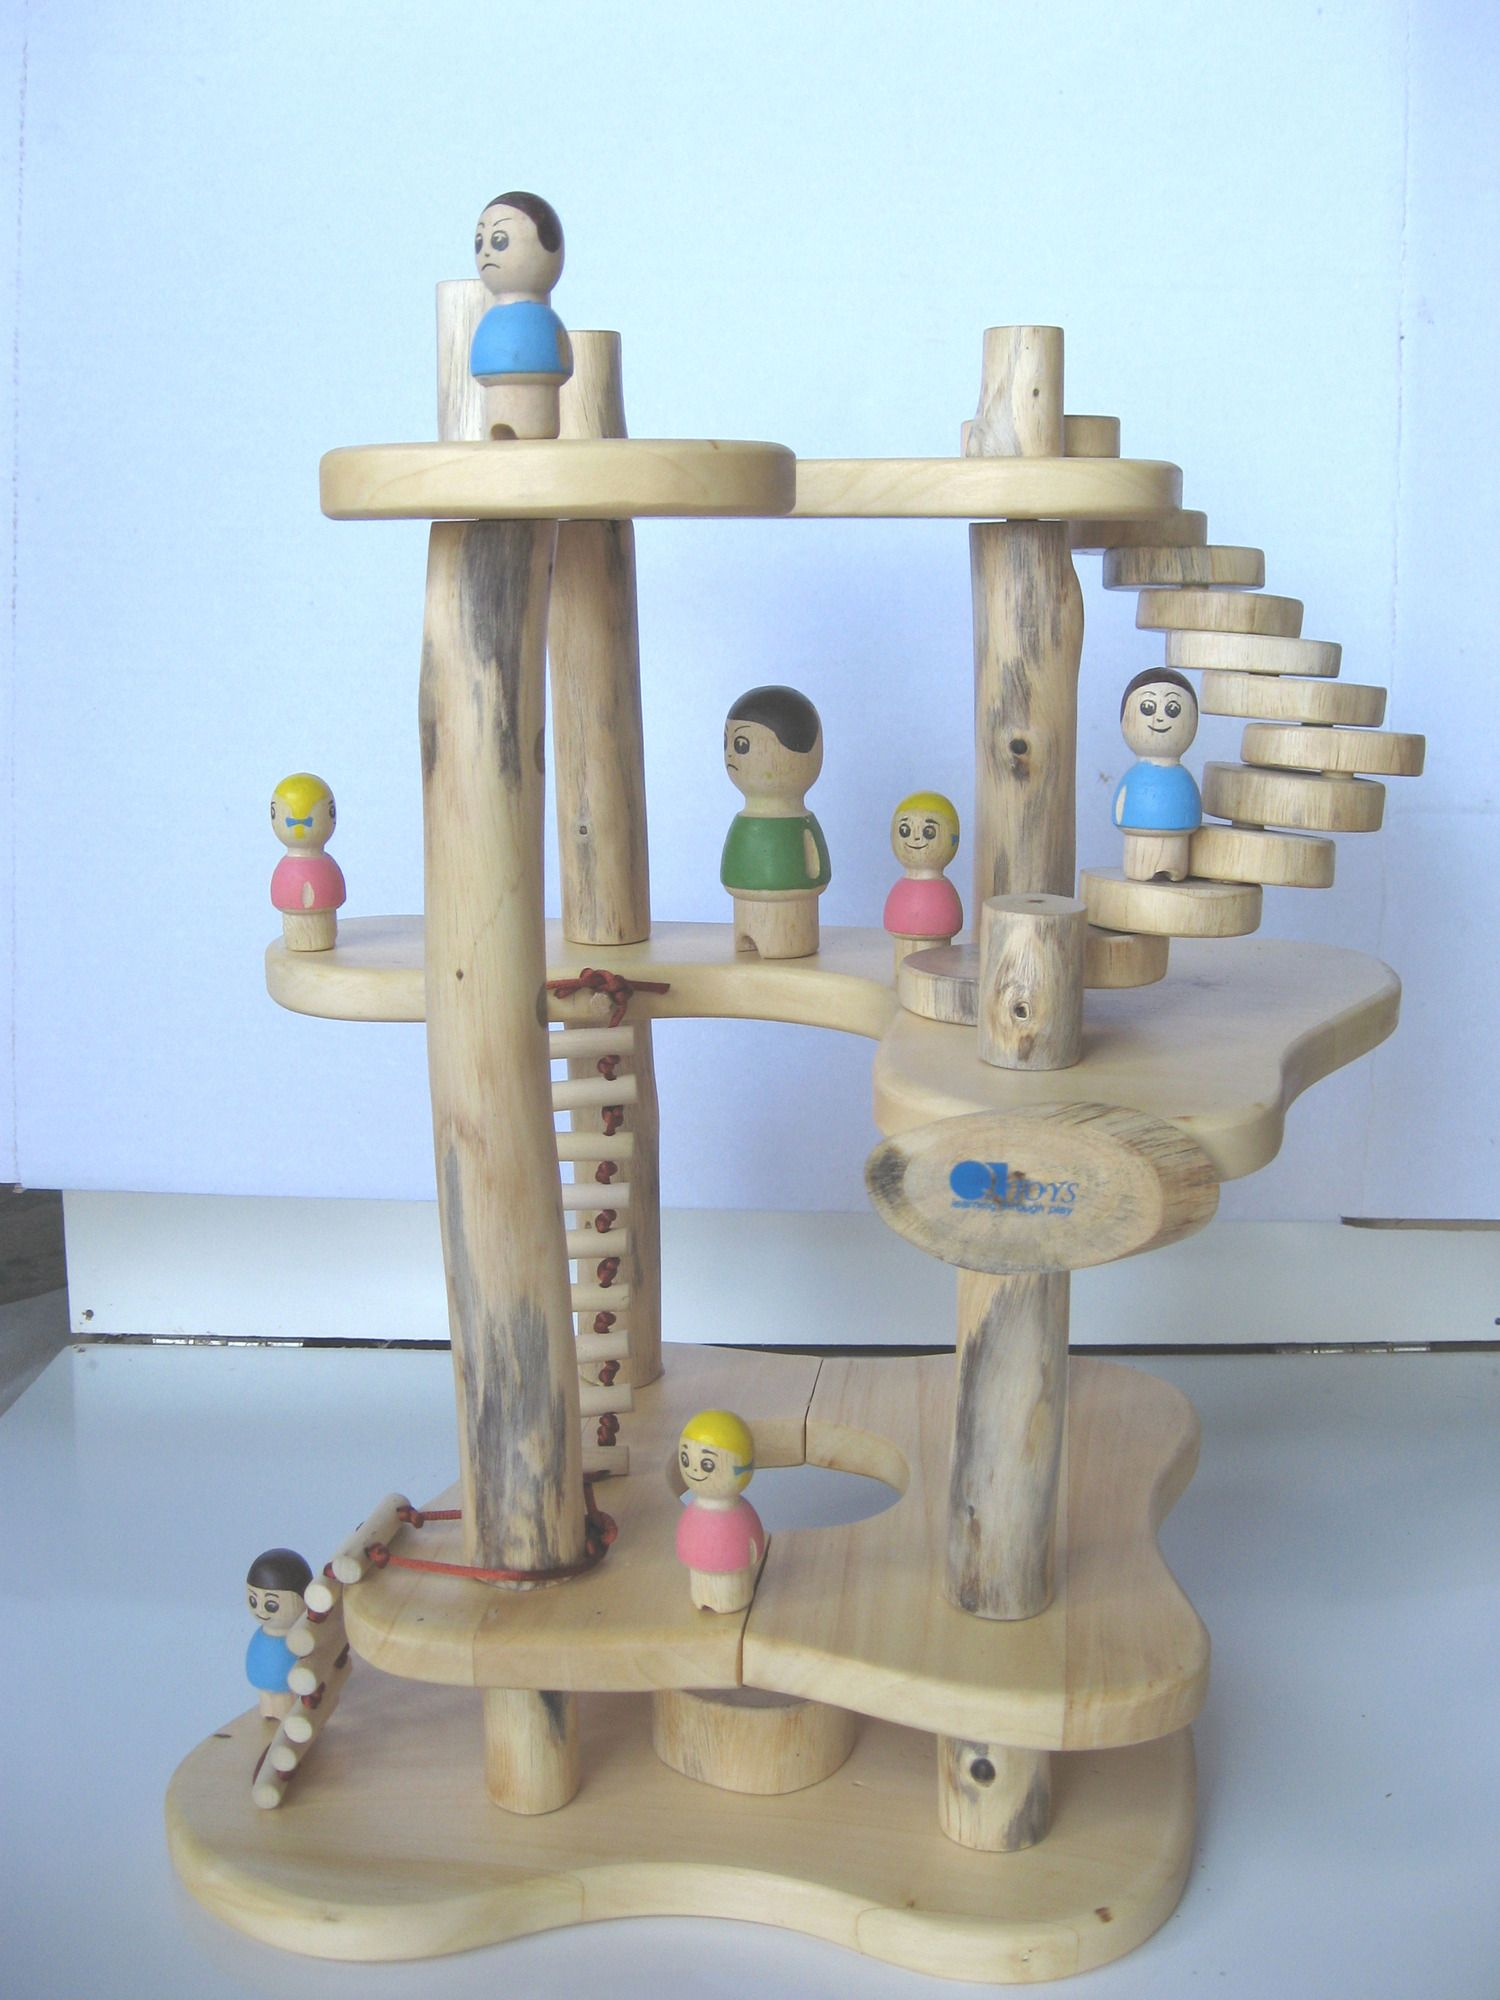 Tree House Construction Set Q Toys   Gardens   Kids toys, Toys, Wood on wooden doll house plans, toy wood plans, toy dog house plans, toy school house plans, toy boat plans, toy castle plans, deck plans, toy wooden tree houses, toy dollhouse furniture, tiny house plans, toy kitchen plans, wooden toy airplane plans, toy train plans,